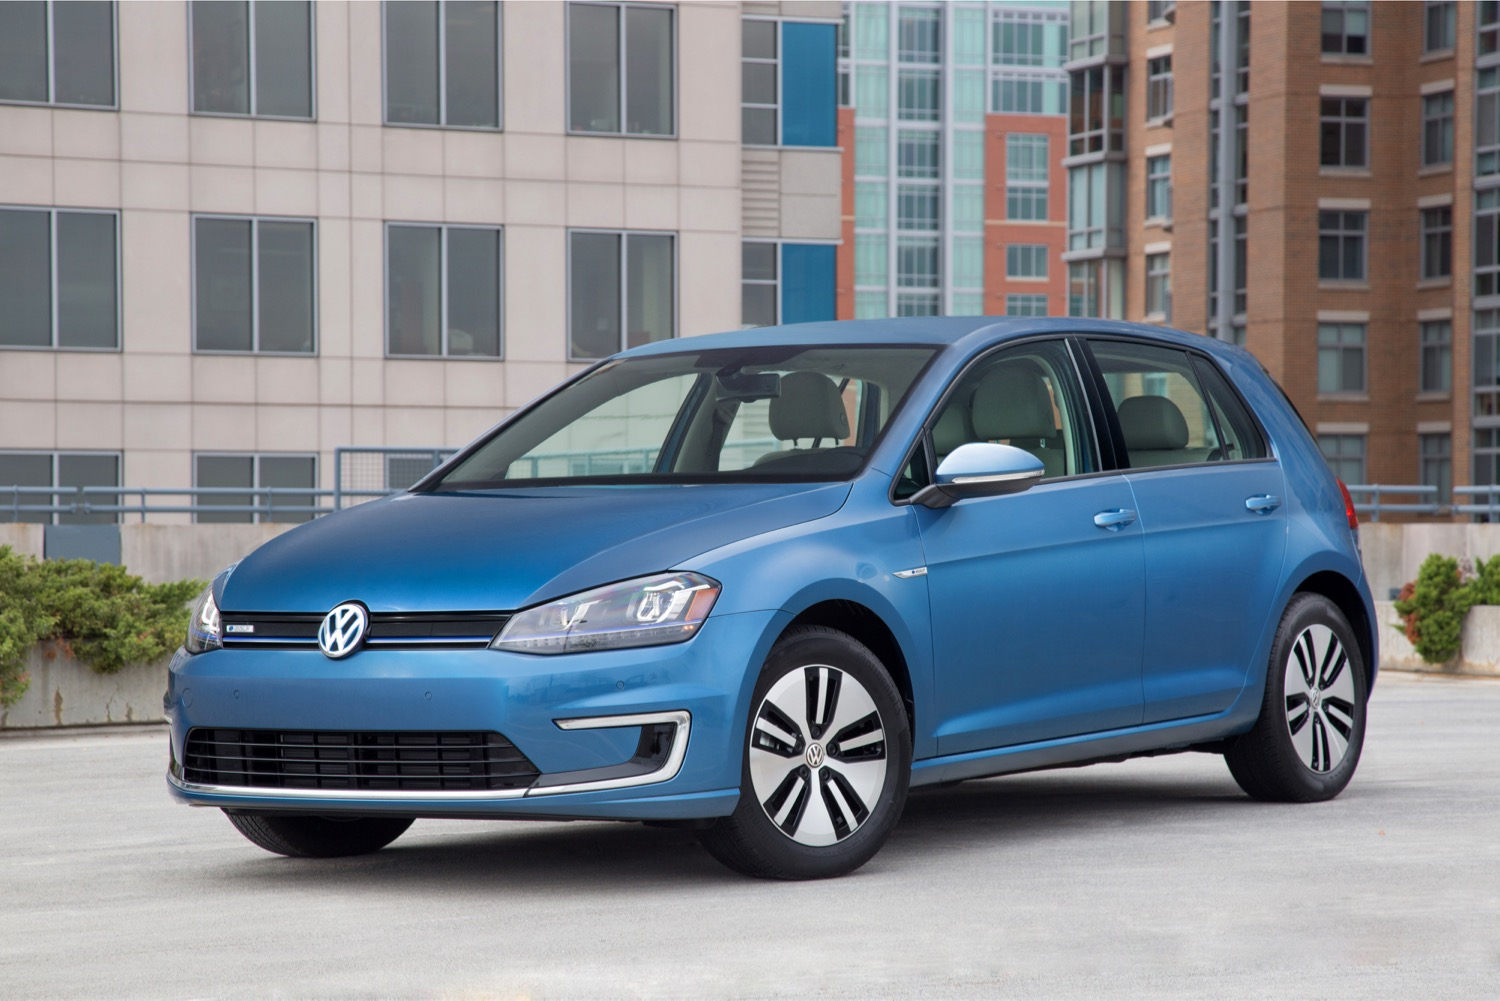 2016 volkswagen e golf se 30k price for new electric car